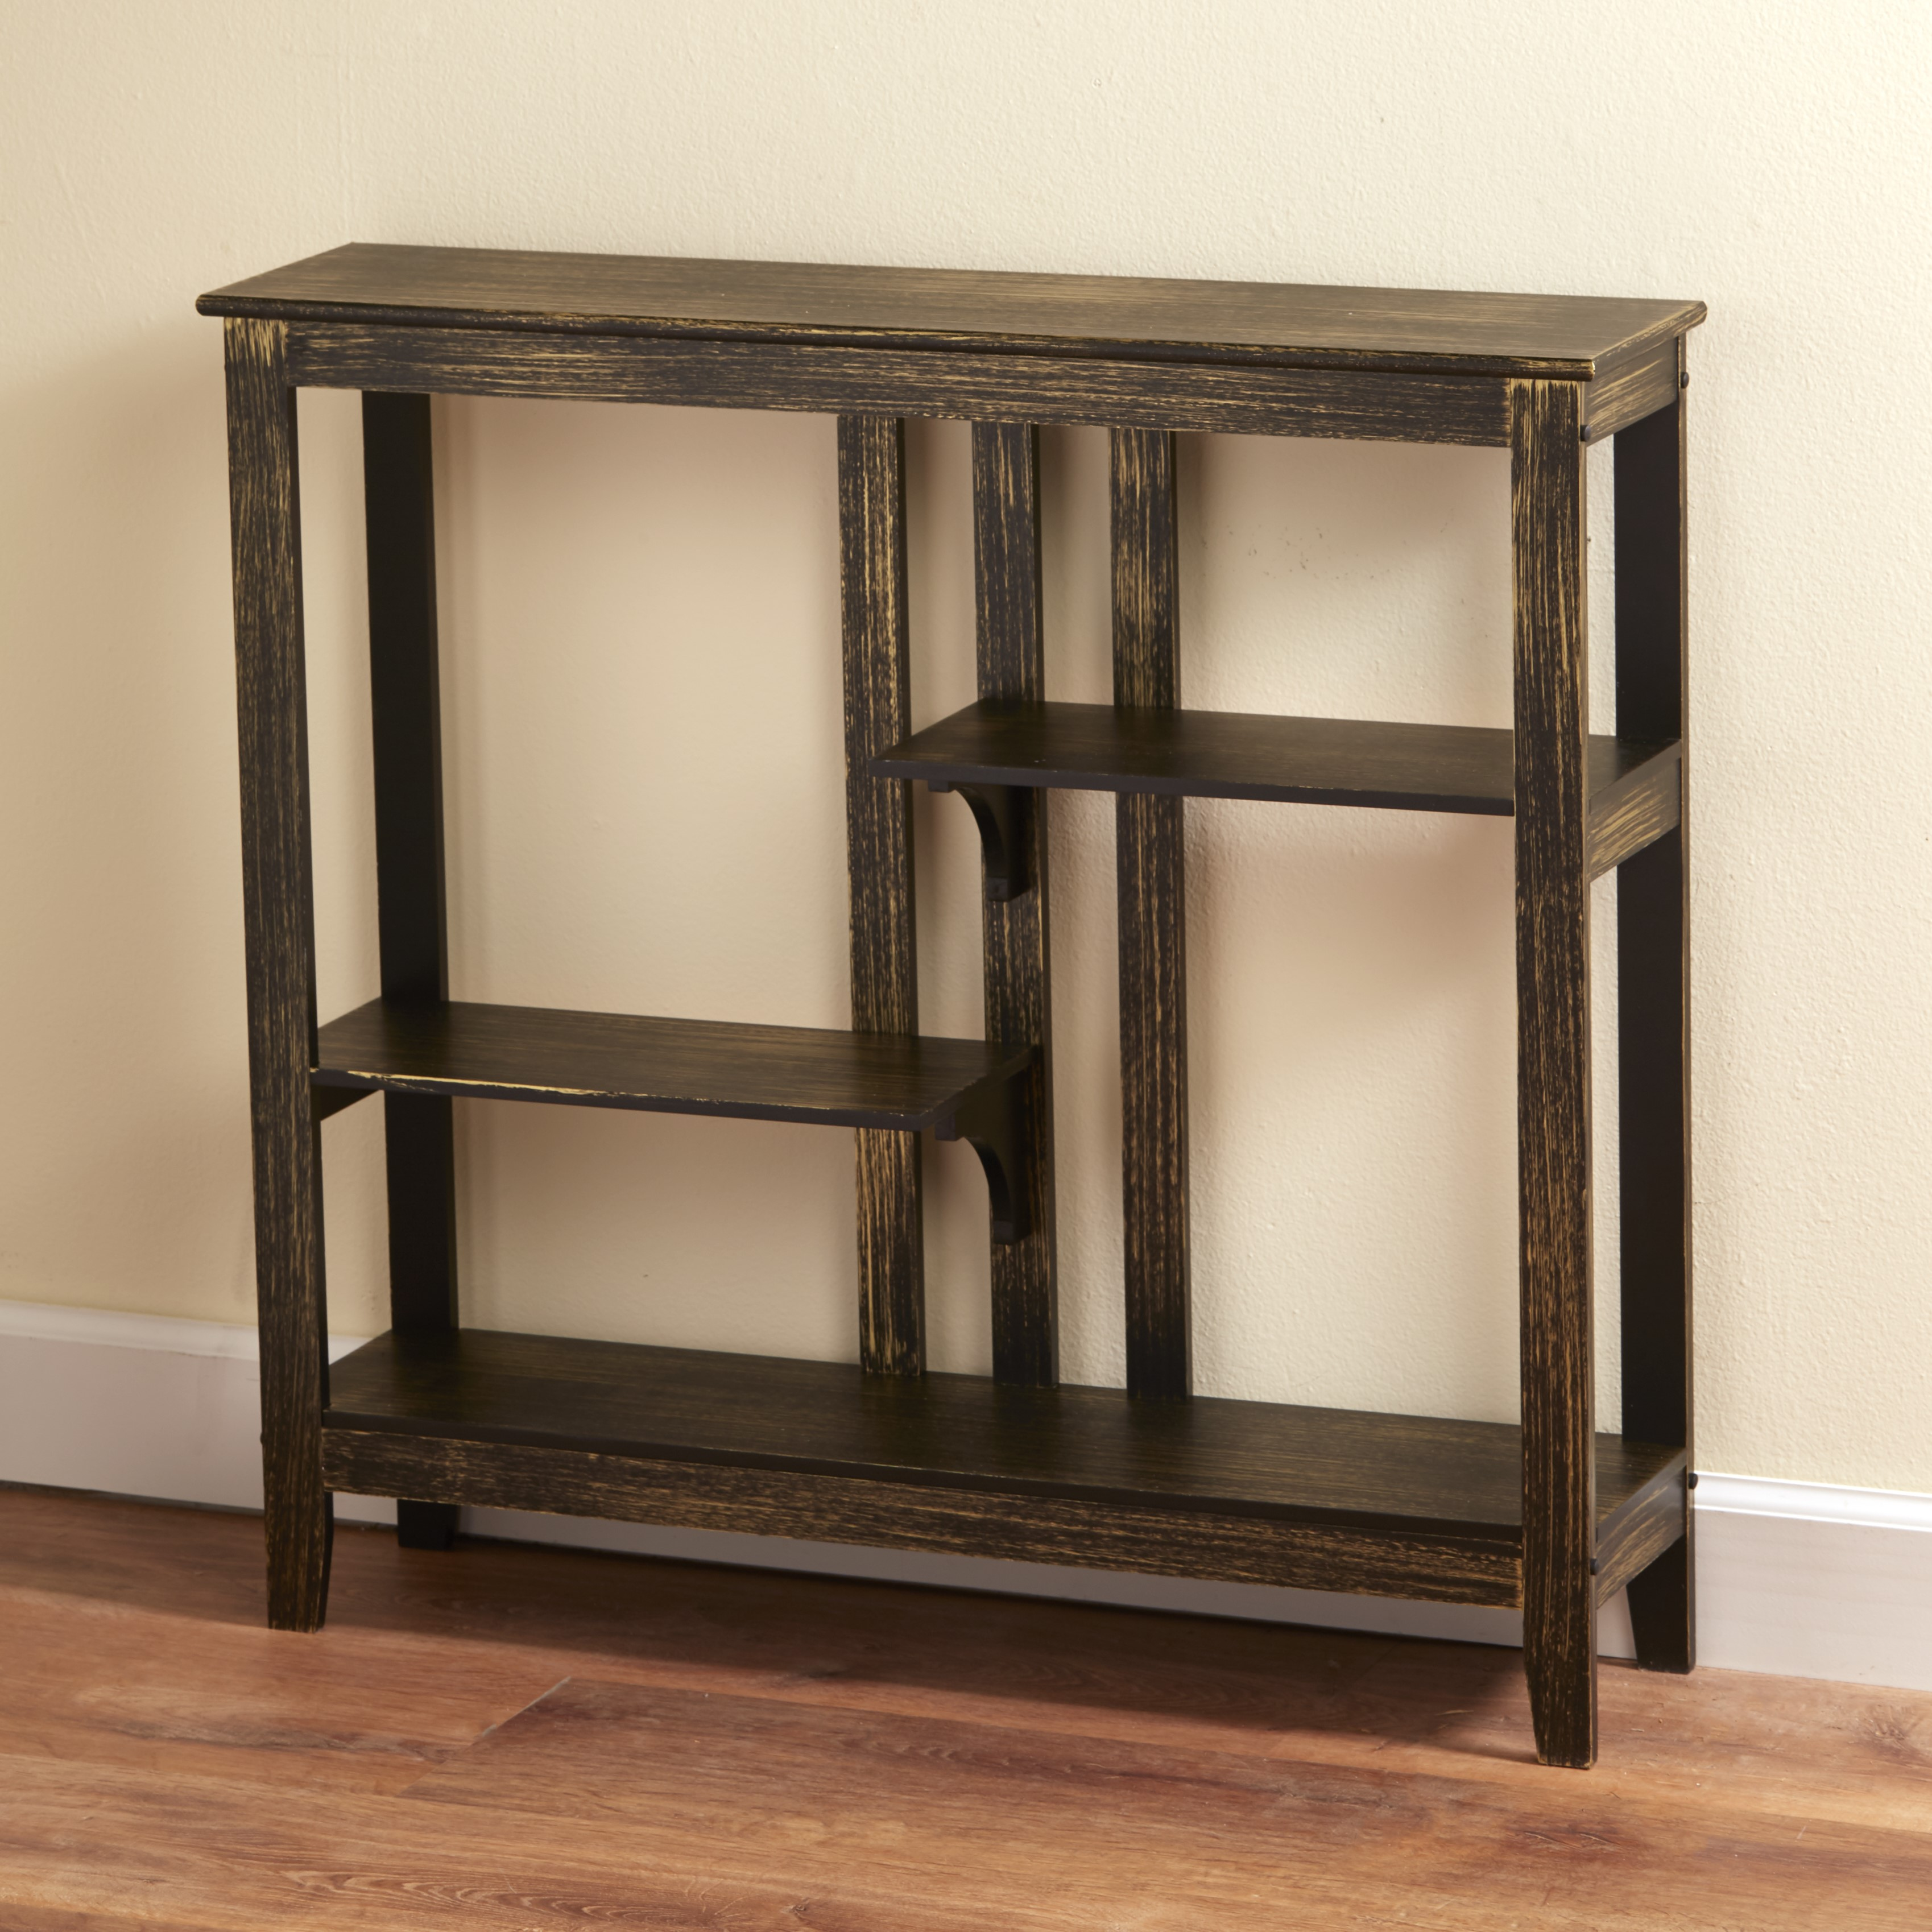 Distressed Finish Console Table Narrow Hallway With Display Shelves Ebay